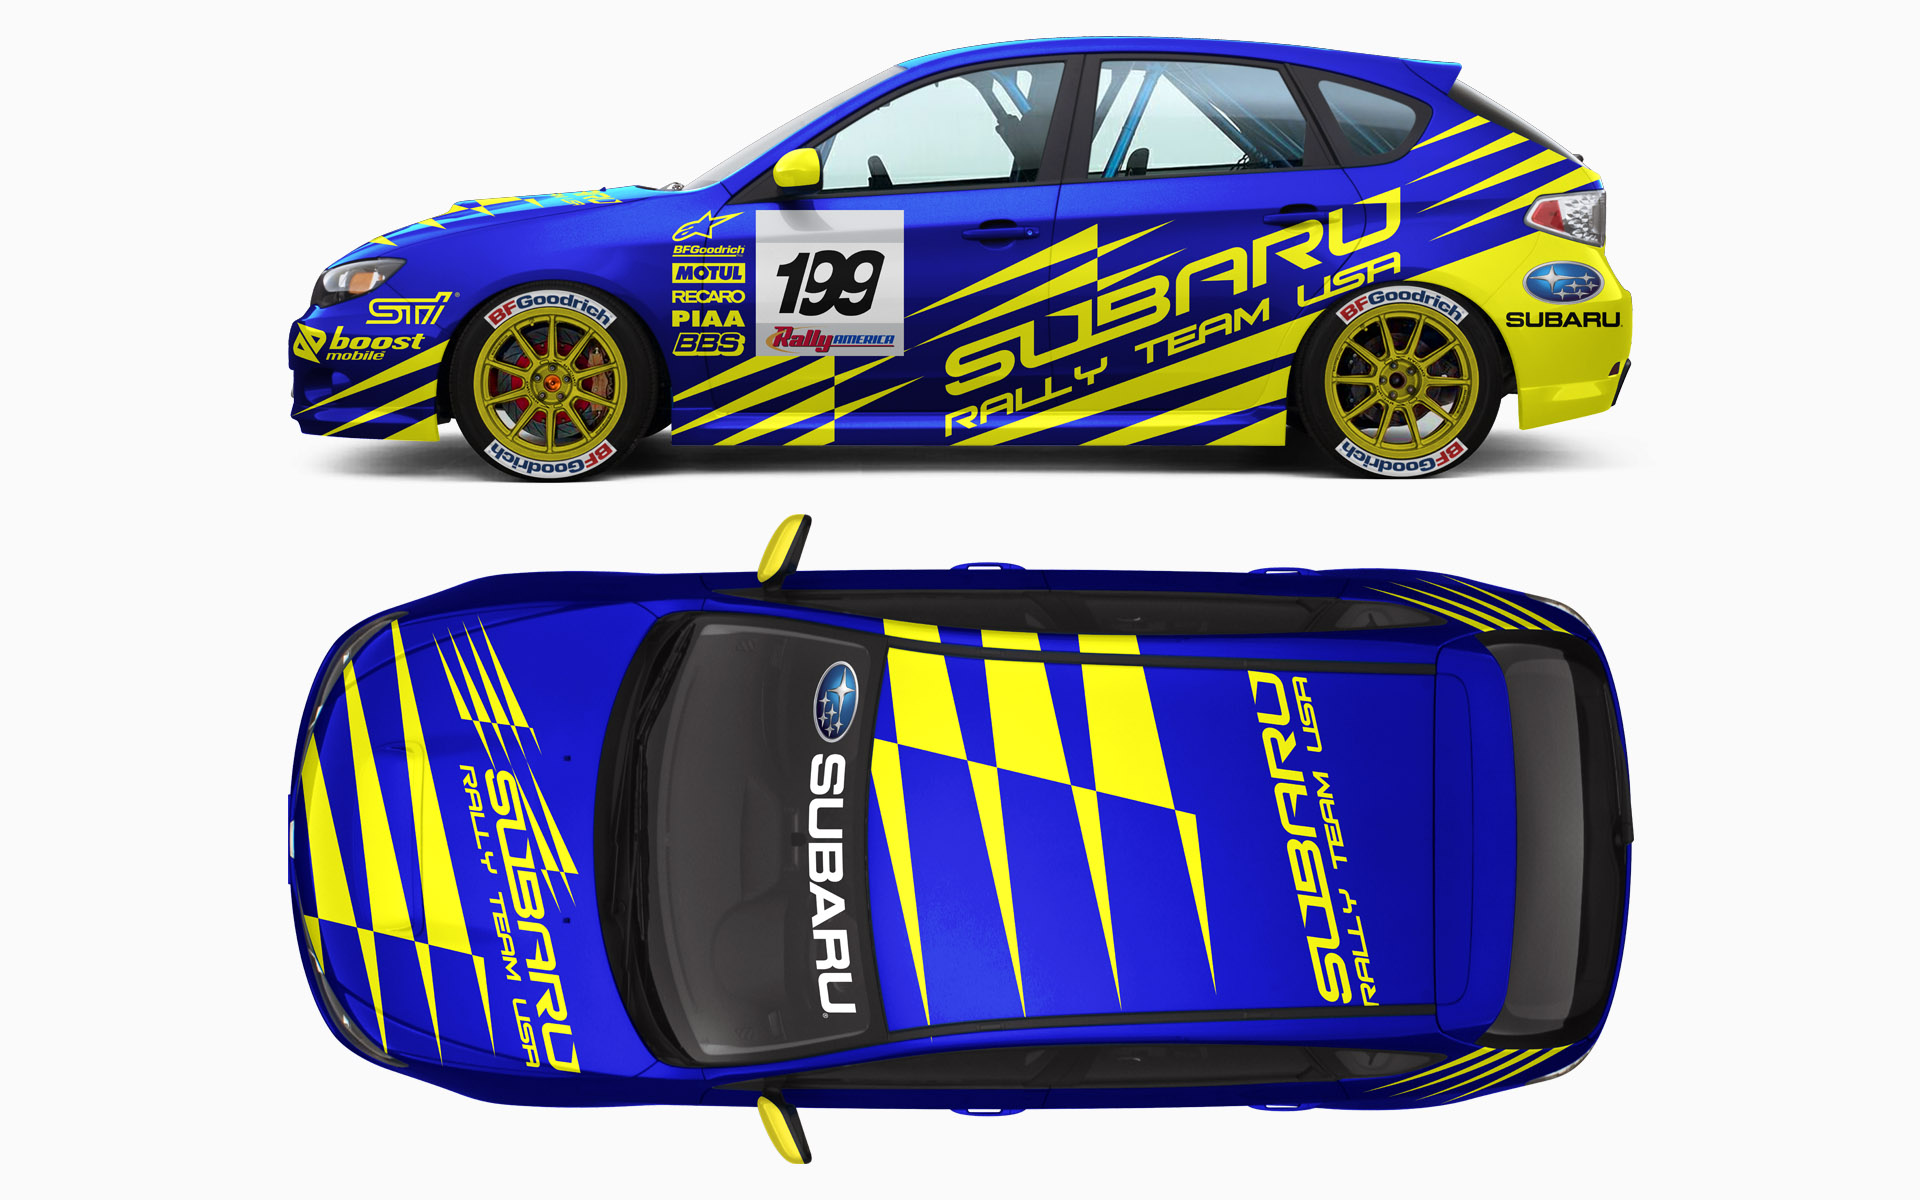 Subaru Rally Team USA WRX STi Rally Livery Visualization